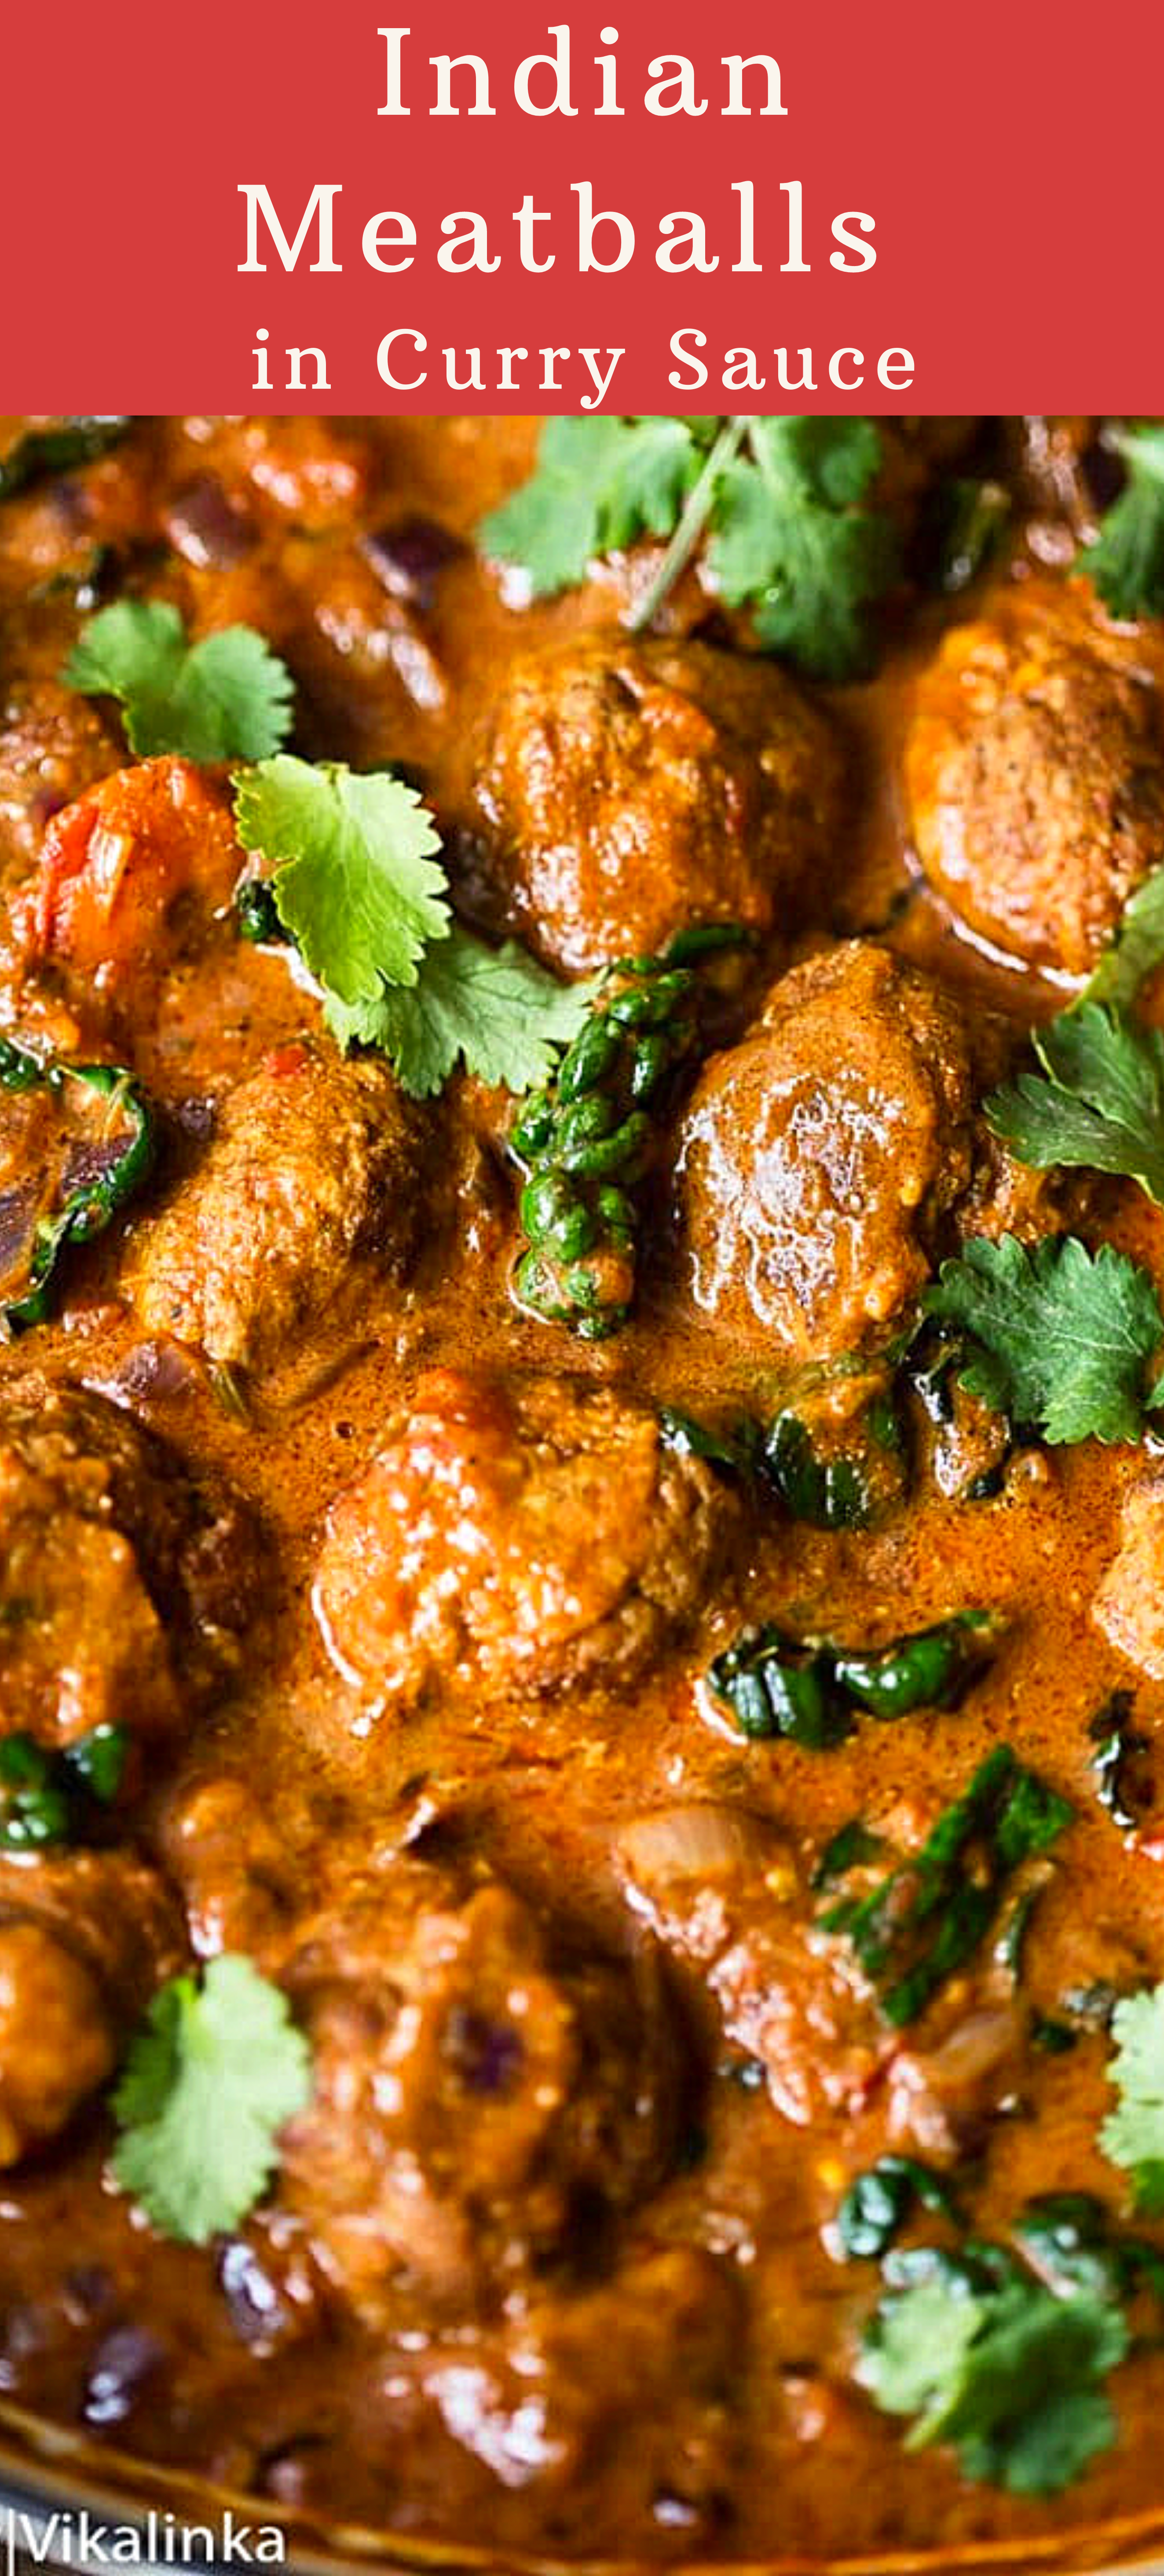 Indian Meatballs In Curry Sauce Curry Recipes Indian Indian Meatballs Indian Food Recipes